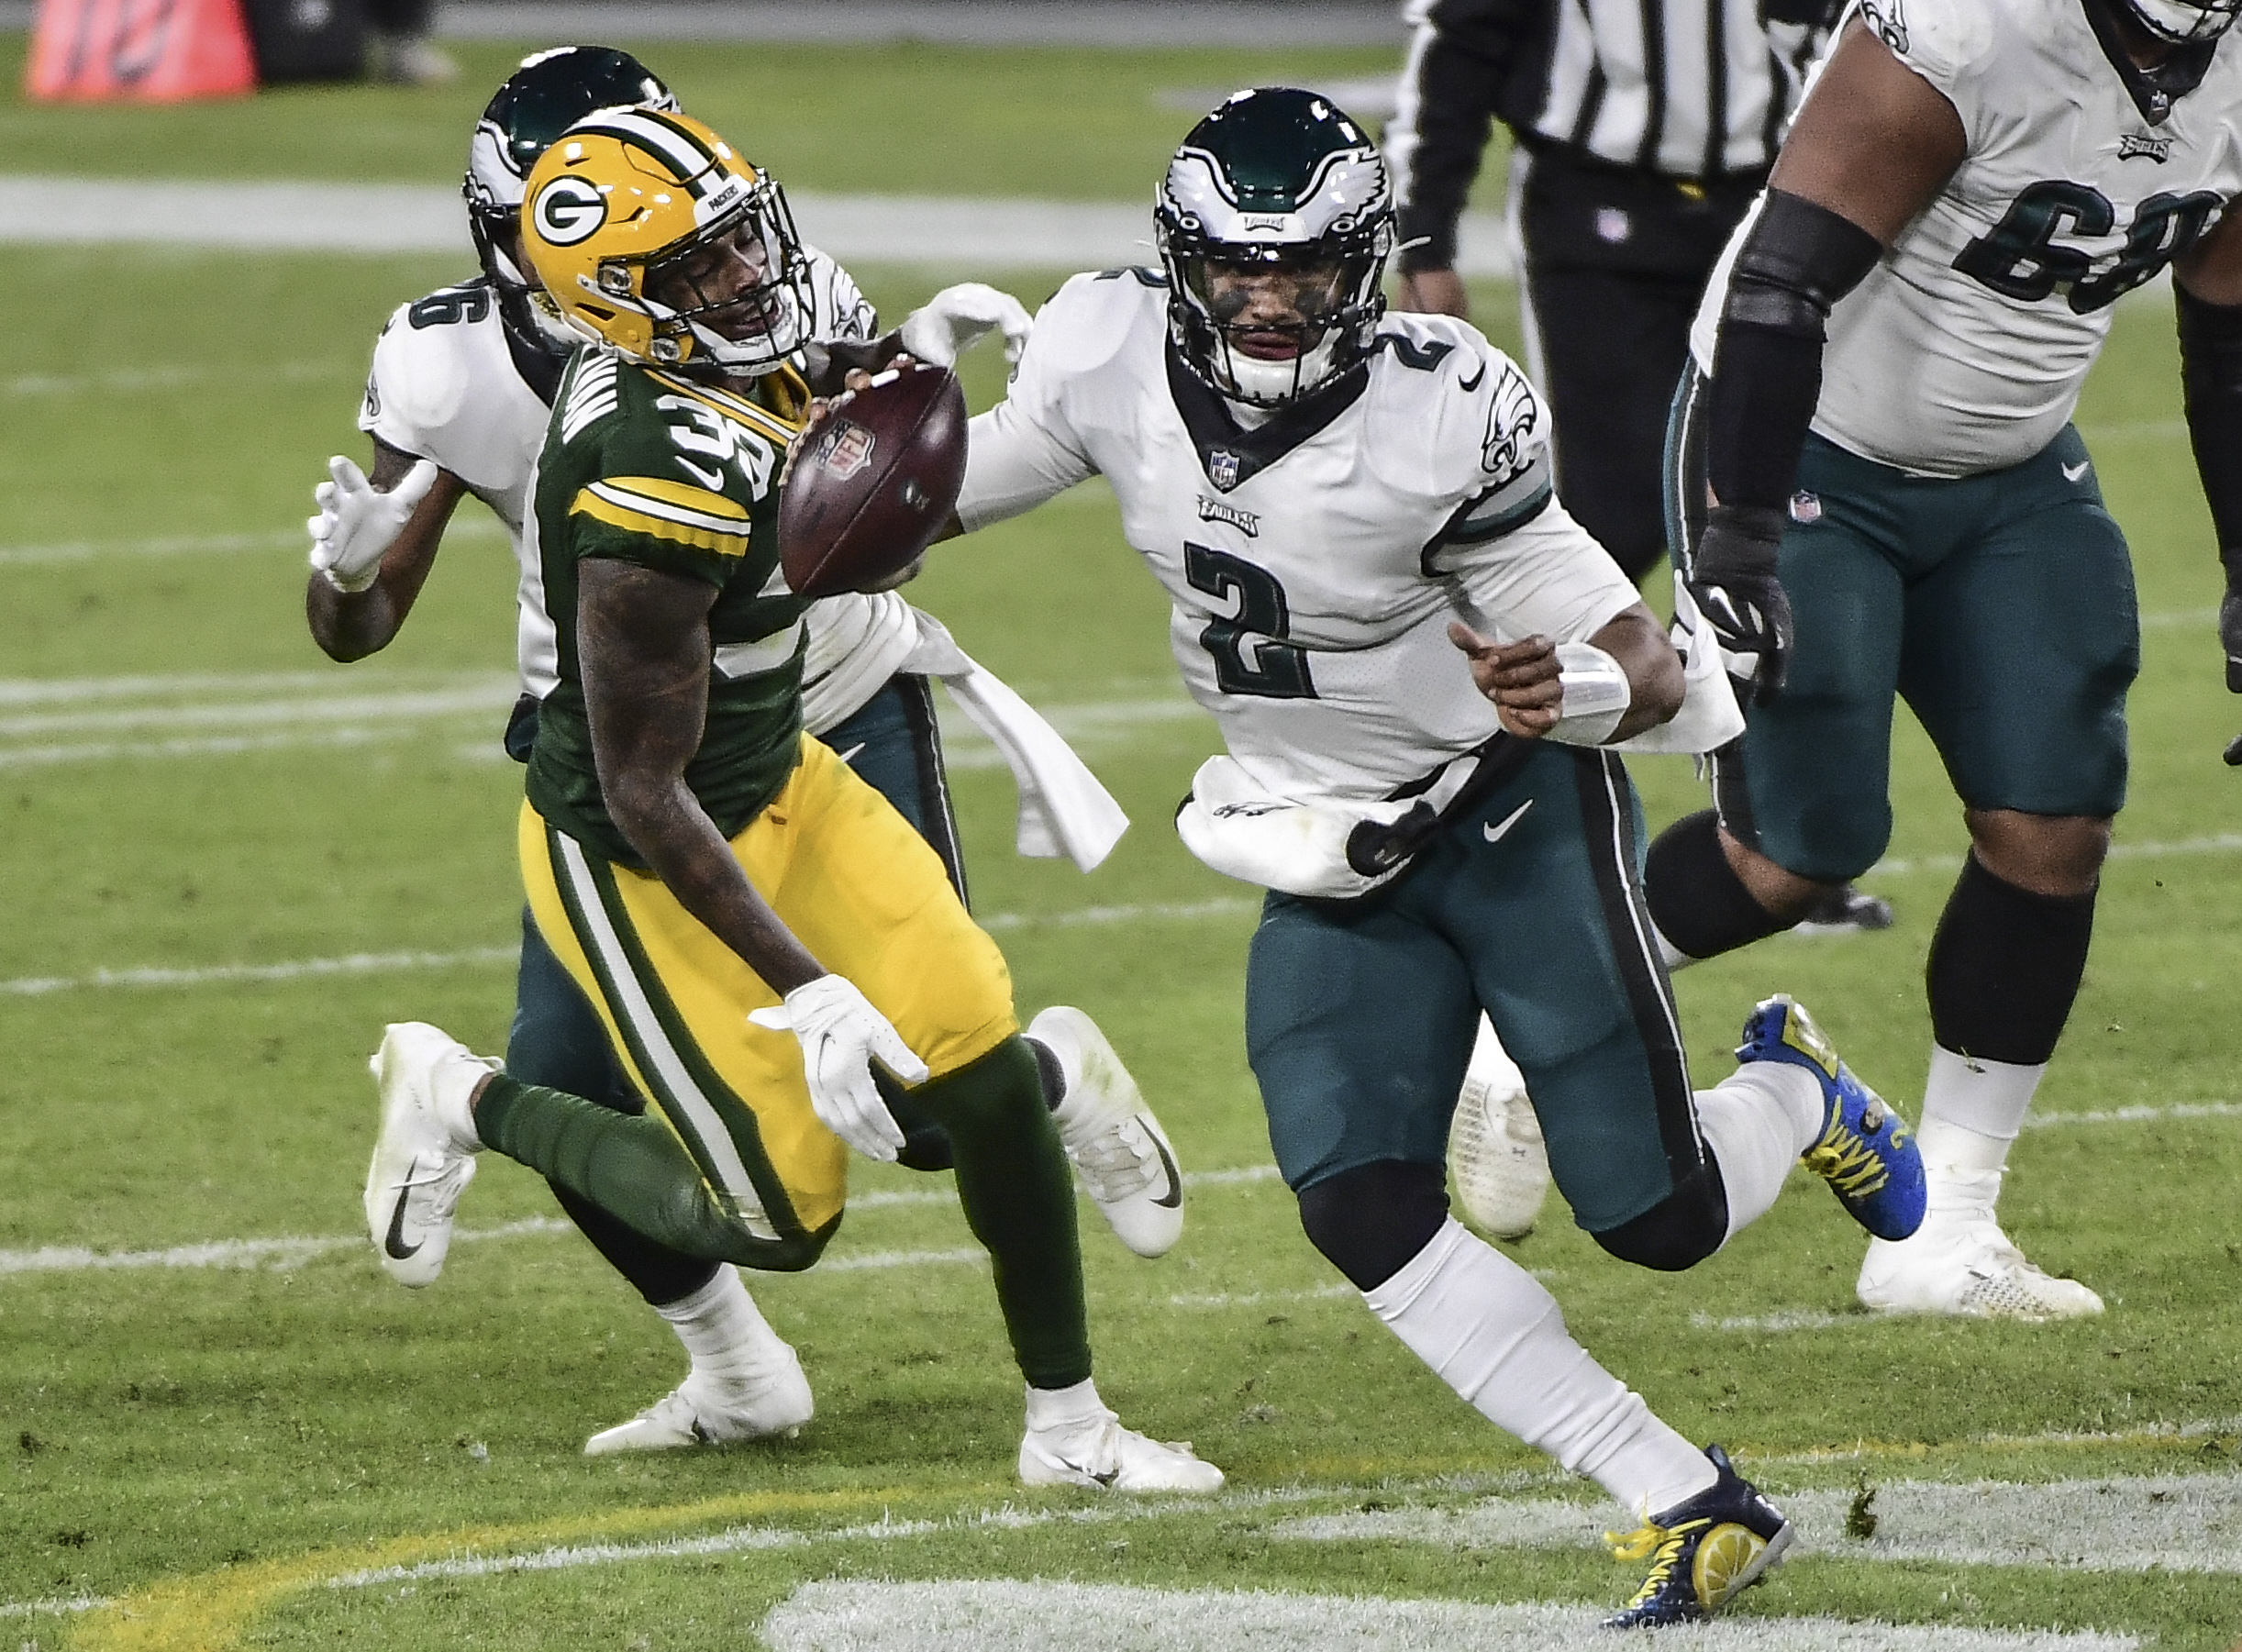 Mike Kaye explains why June 1 is important day for Eagles